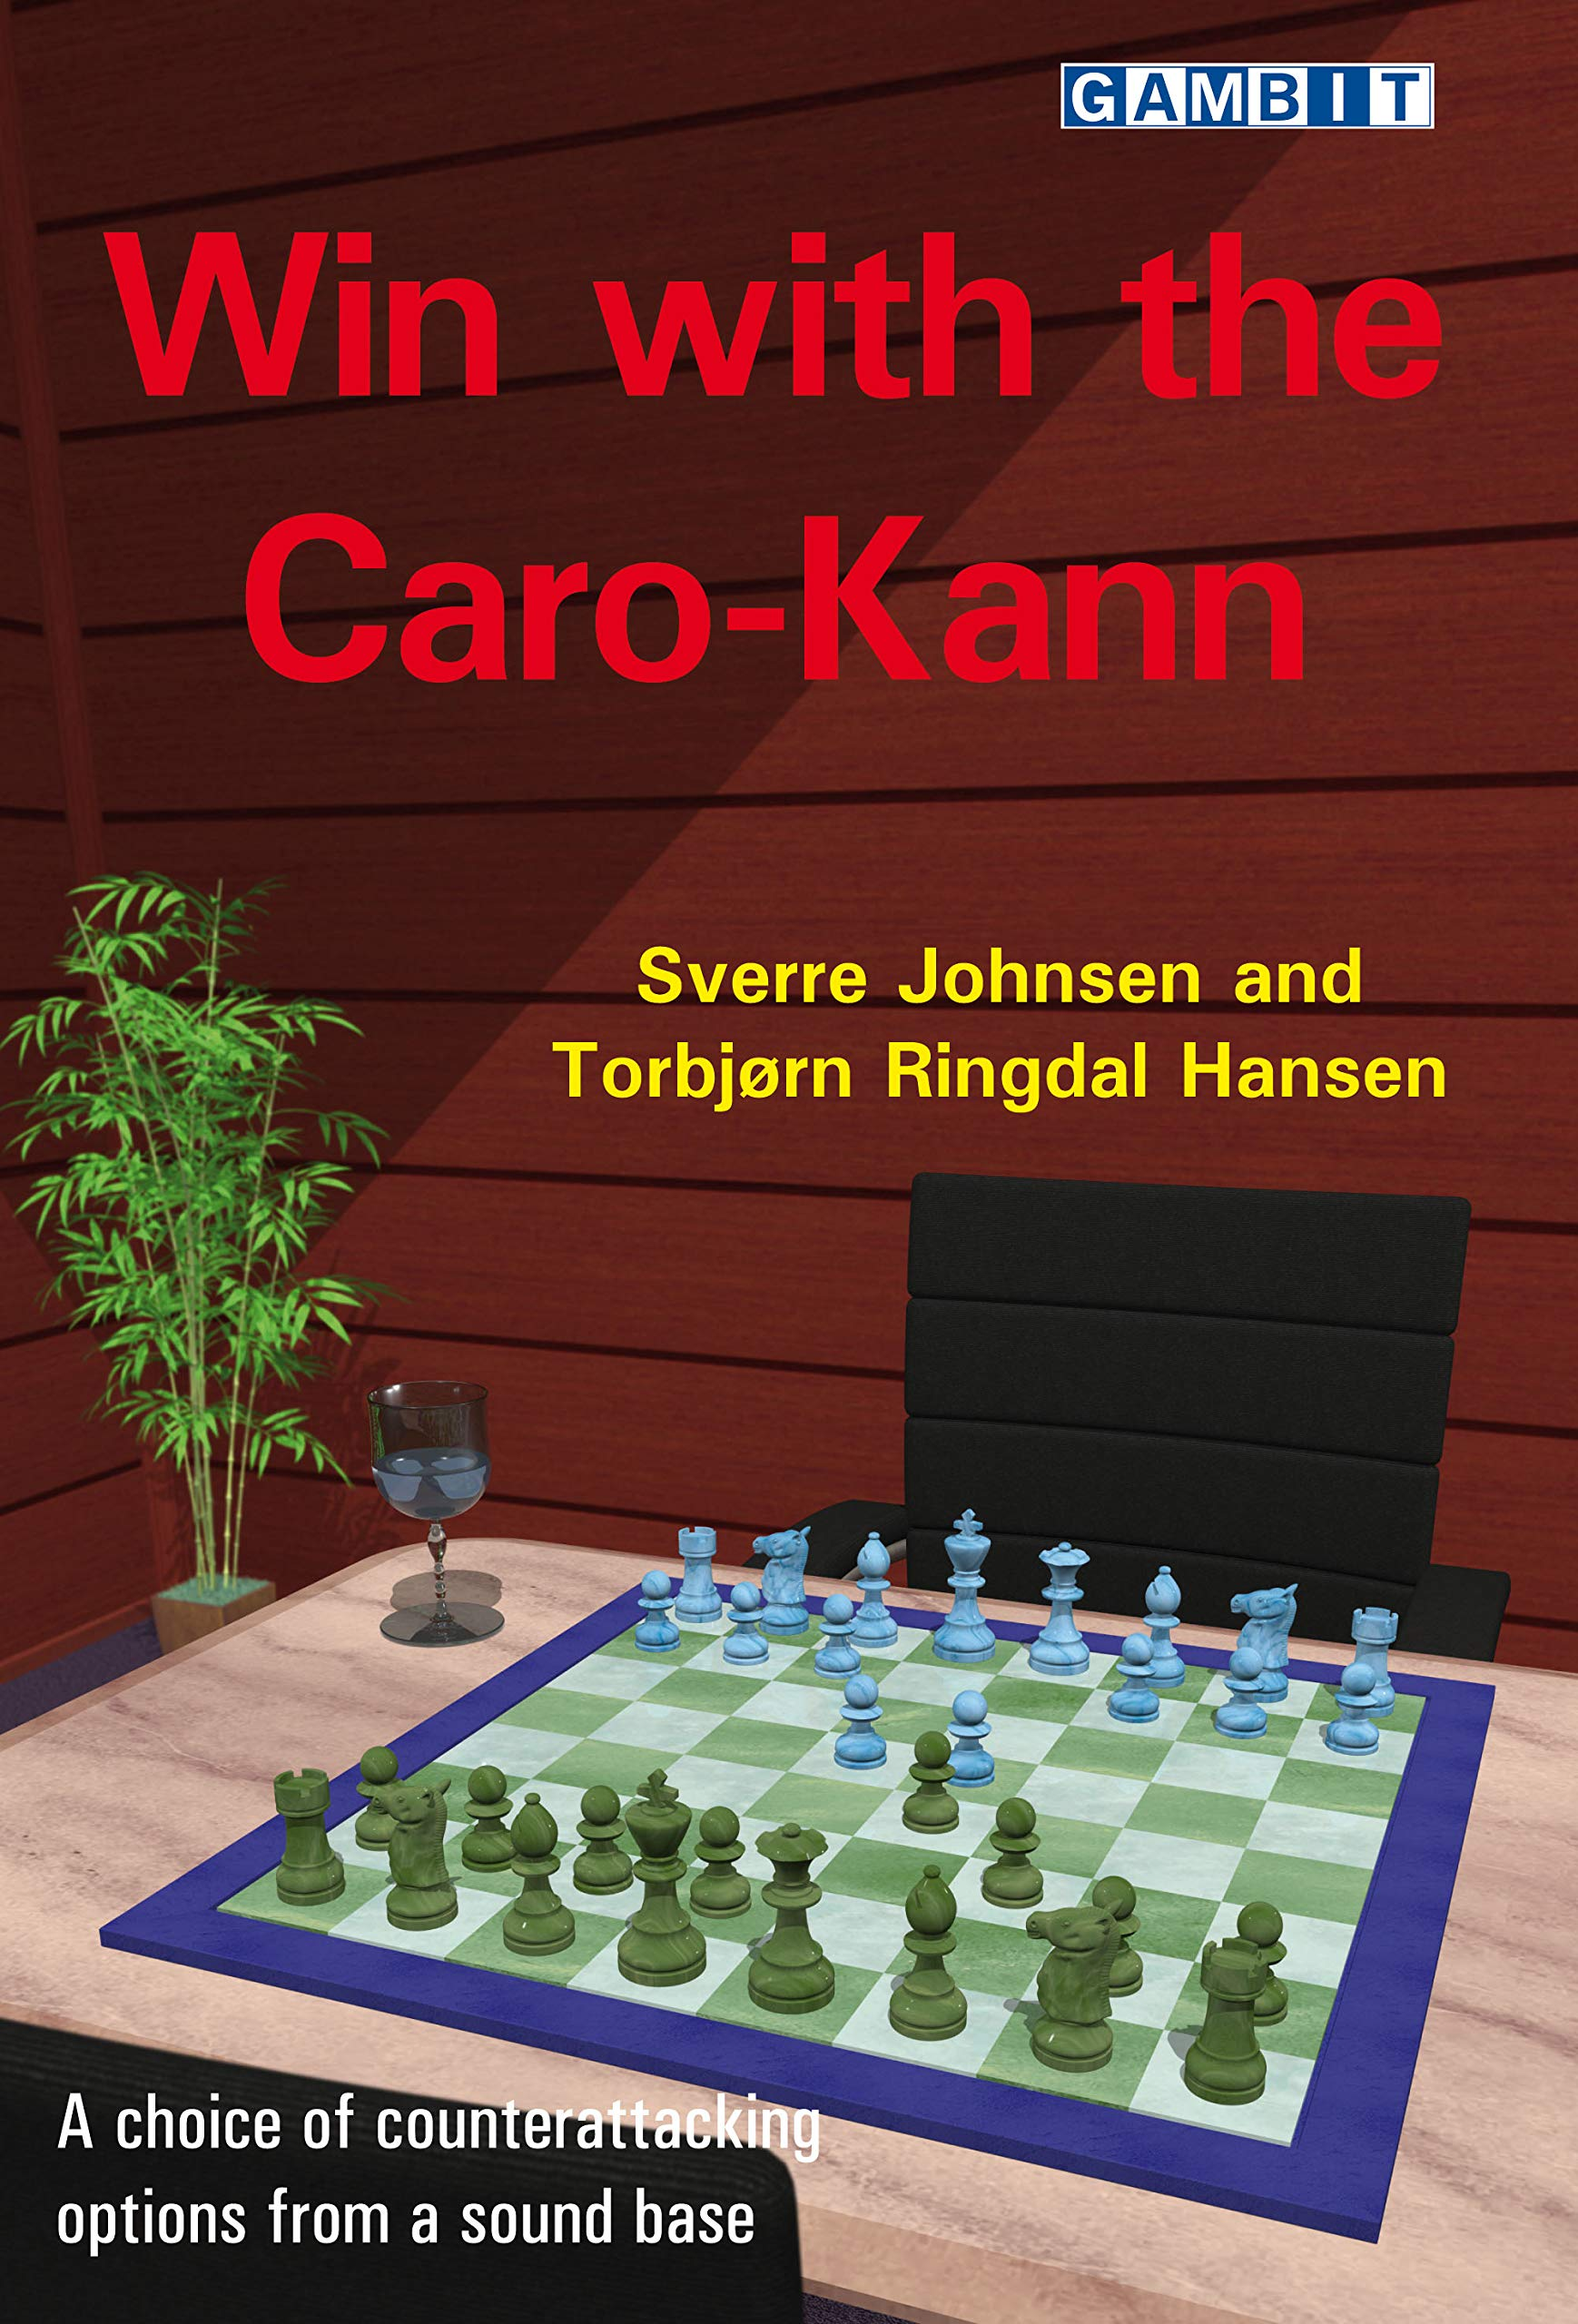 Win with the Caro-Kann, Sverre Johnsen and Torbjørn Ringdal Hansen, Gambit Publications, March 4th 2021, ISBN 1911465678